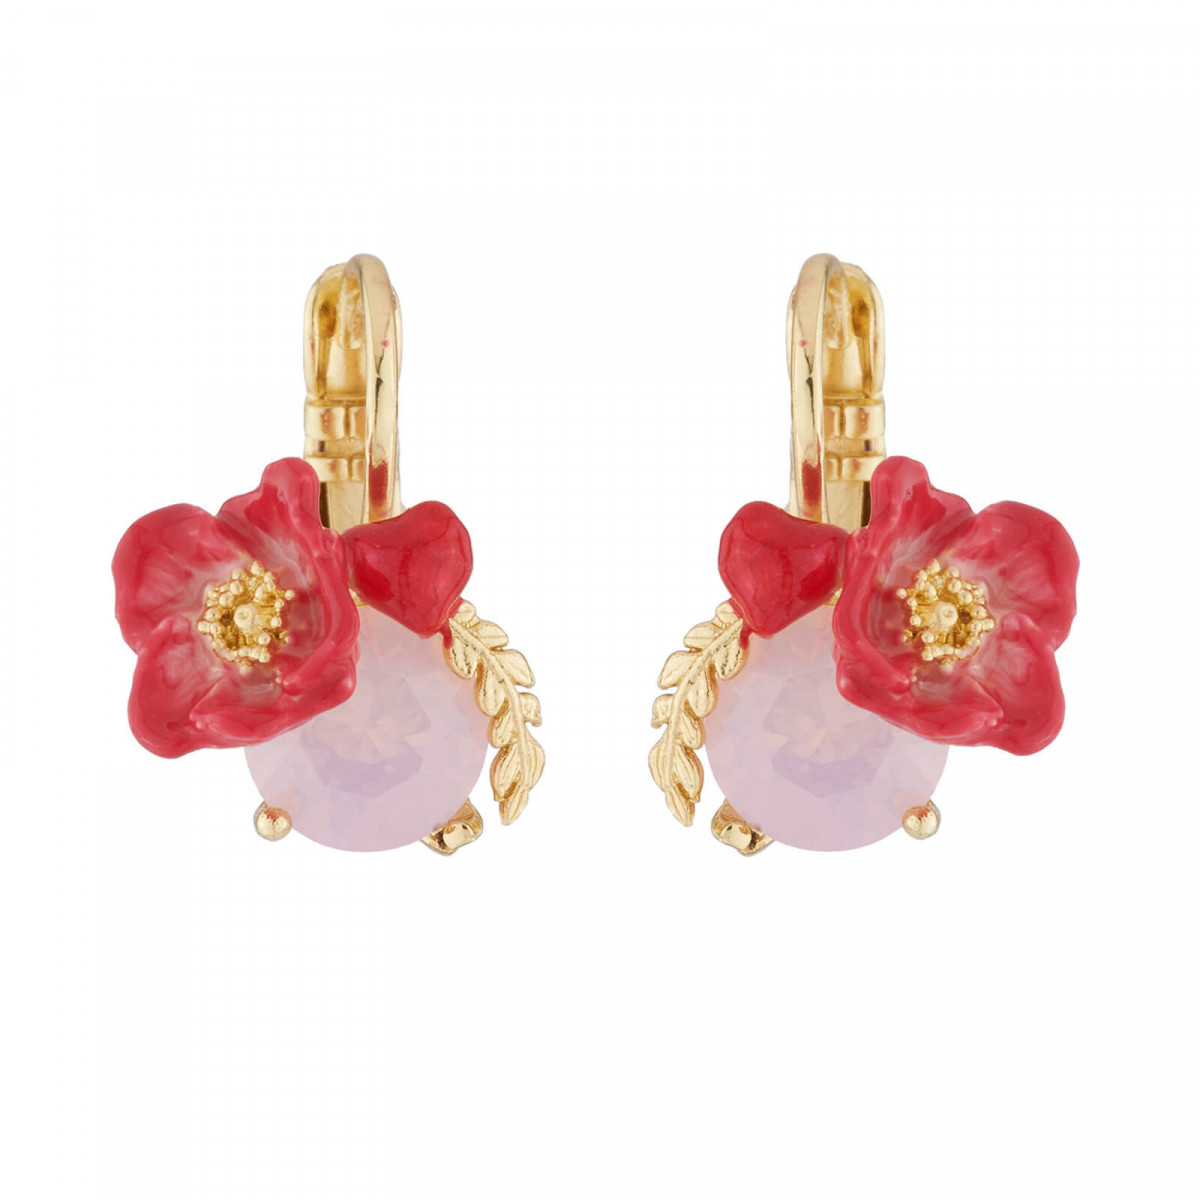 Hook earrings Paris mon amour red heart